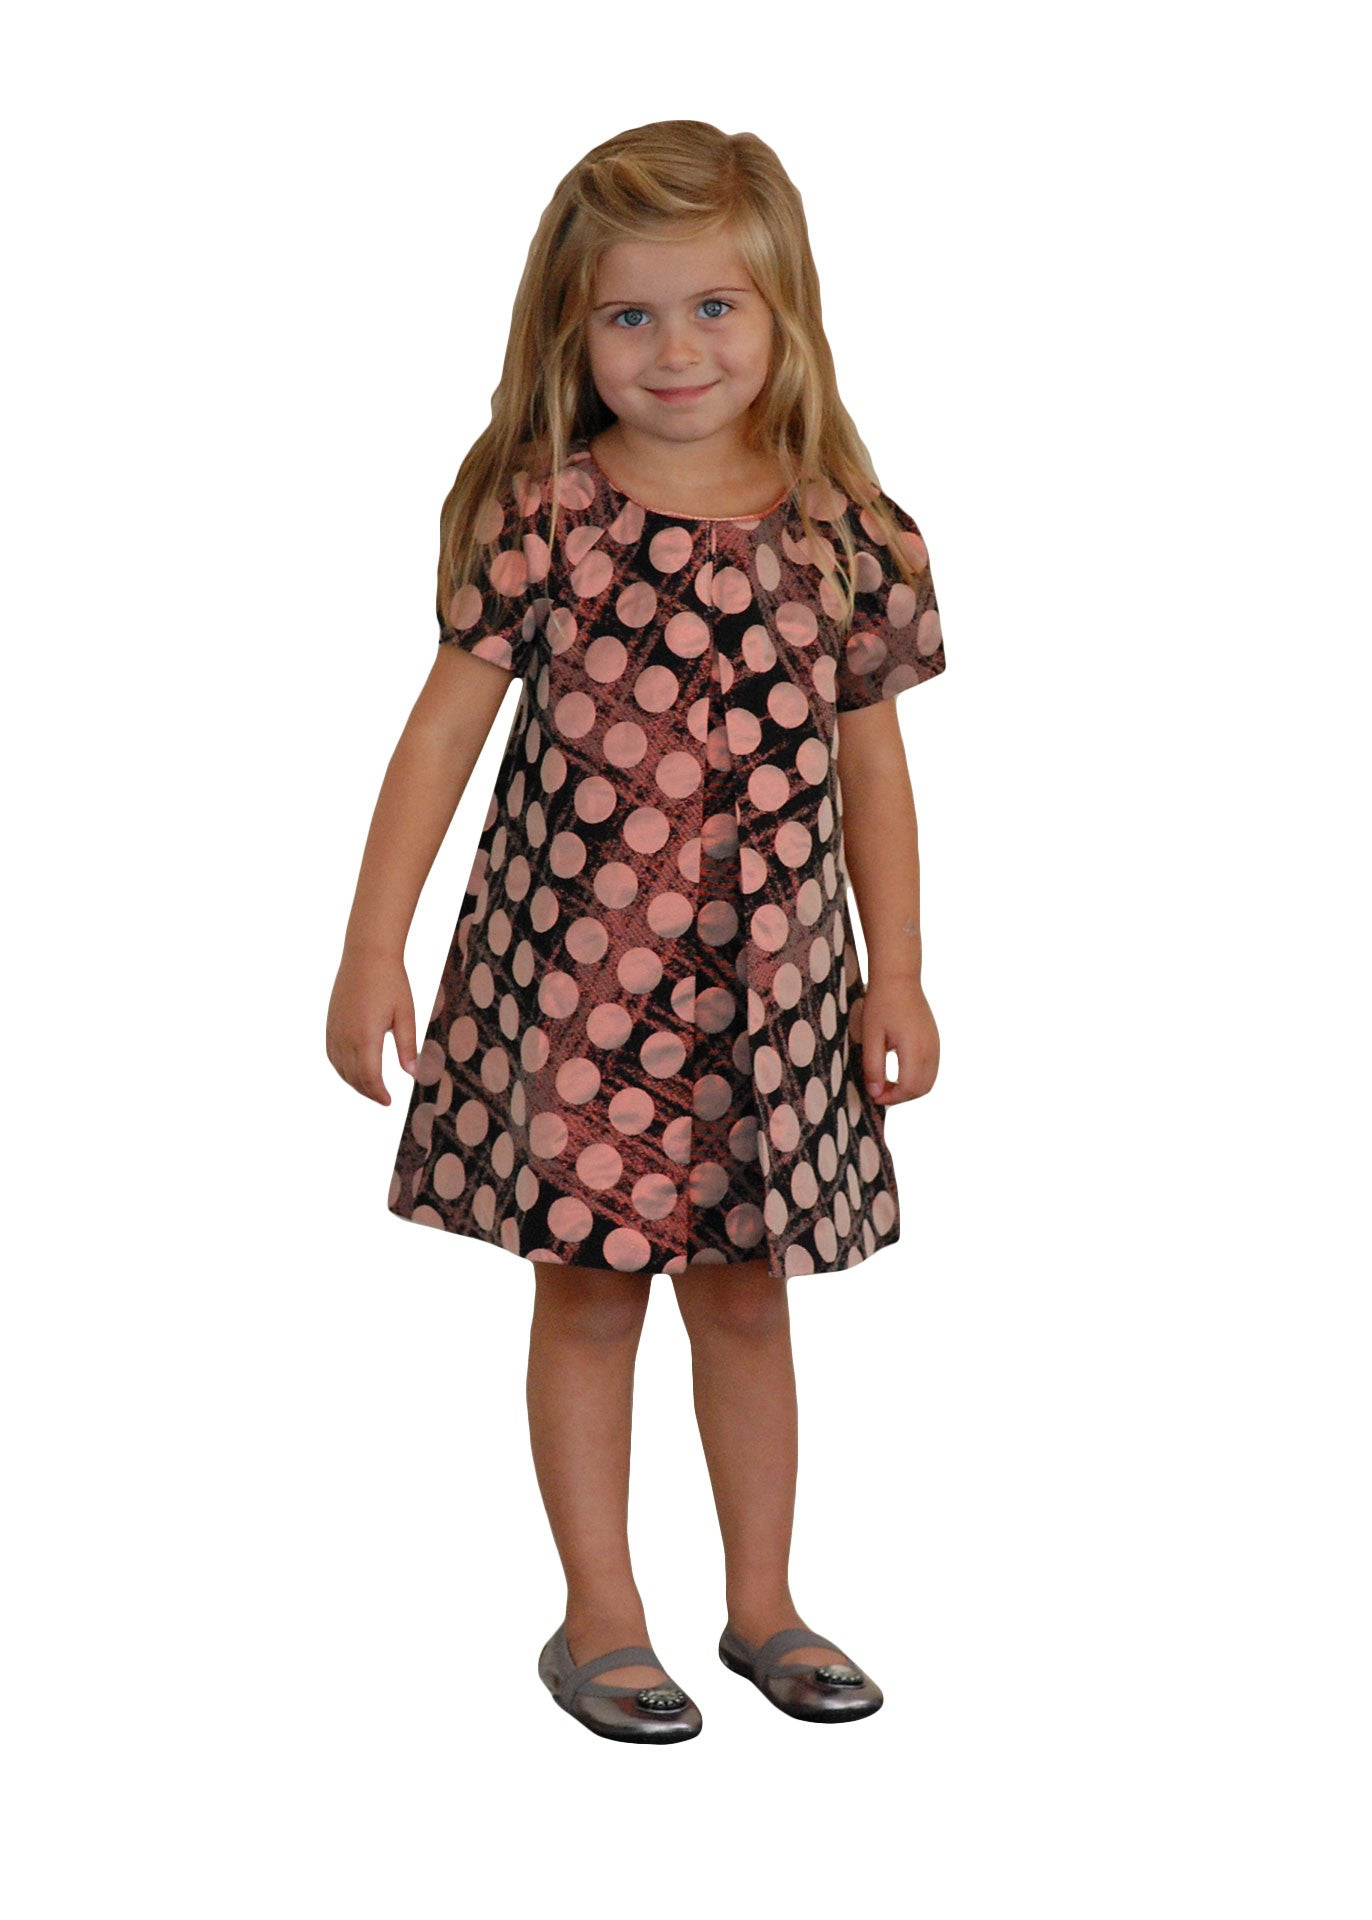 Little girl party dress iridescent Black and Pink Polka dot